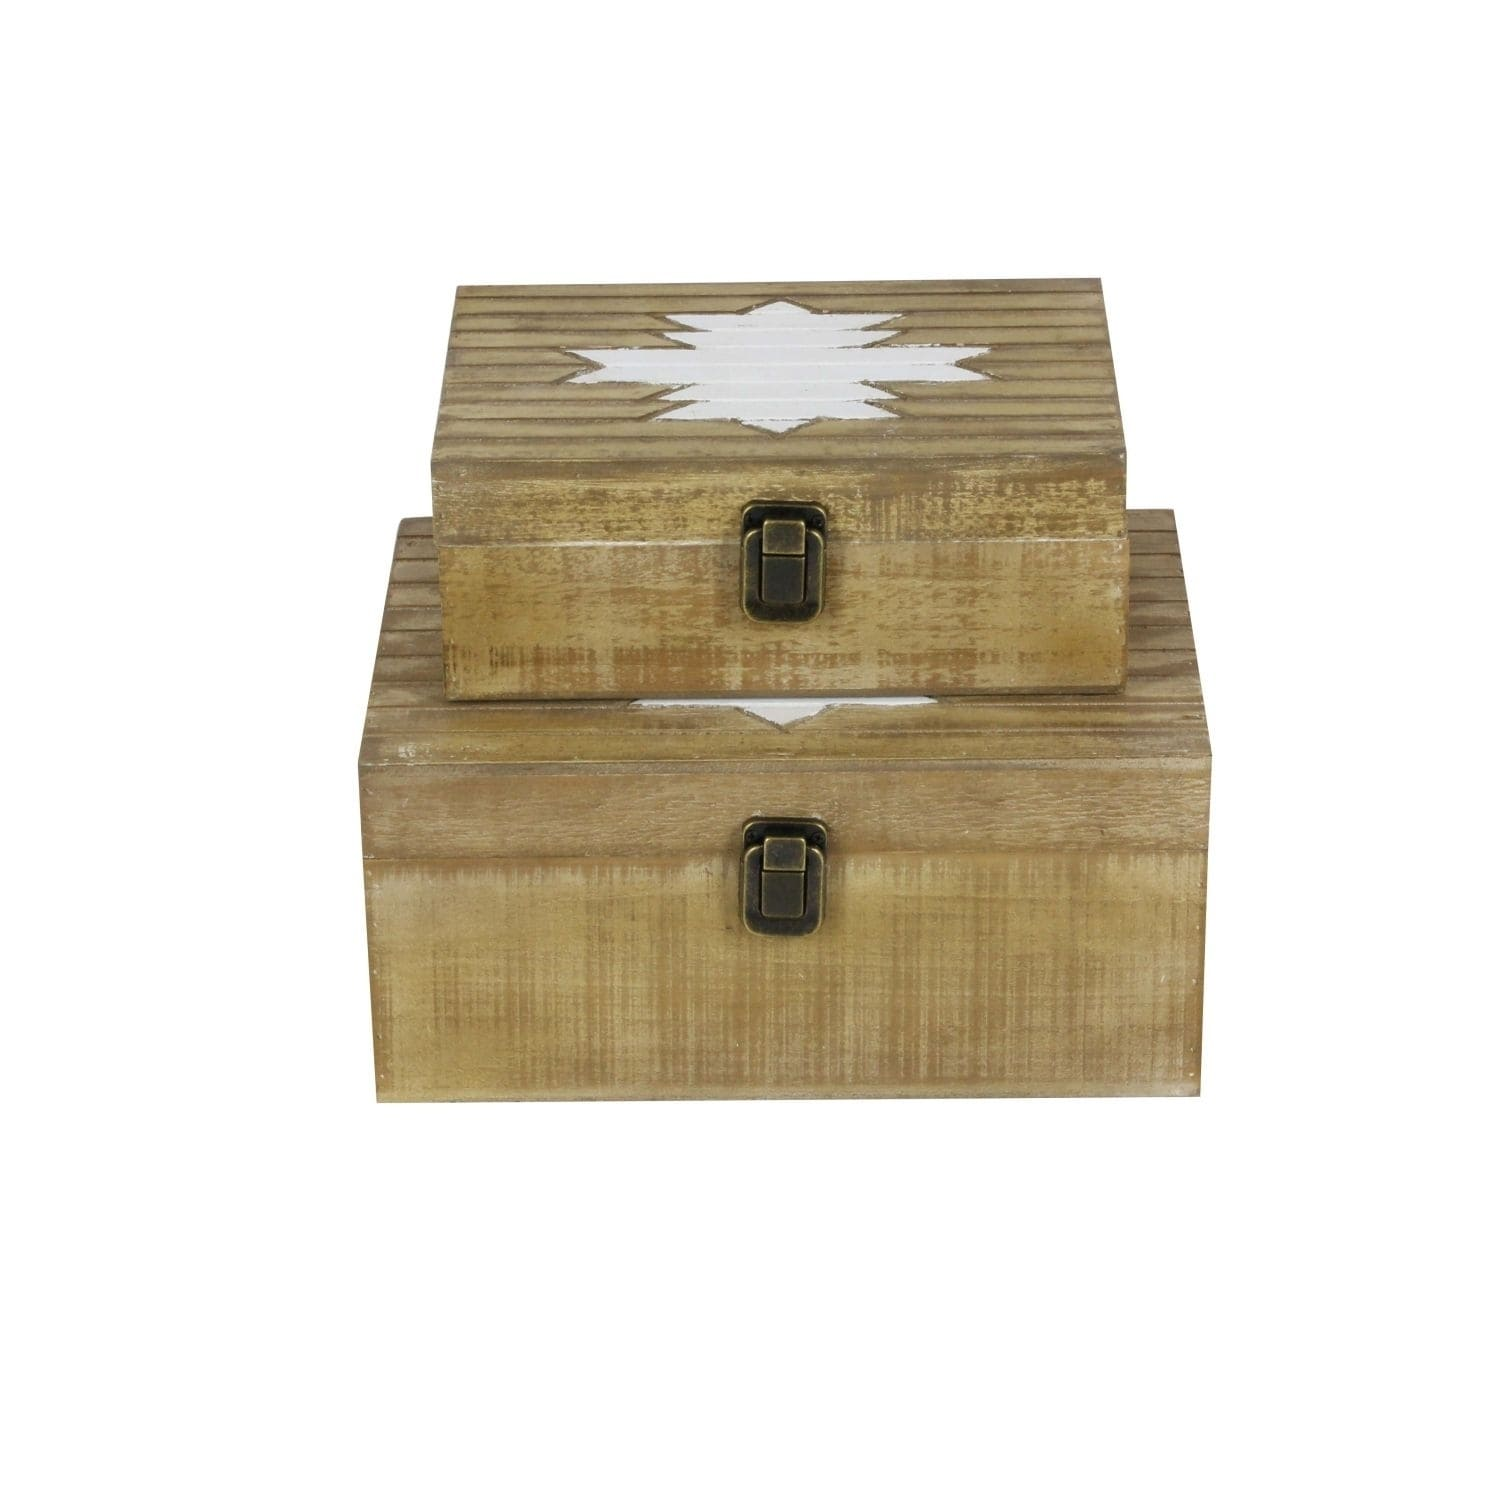 Studio 350 Wood Box Set of 2, 10 inches, 12 inches wide, ...